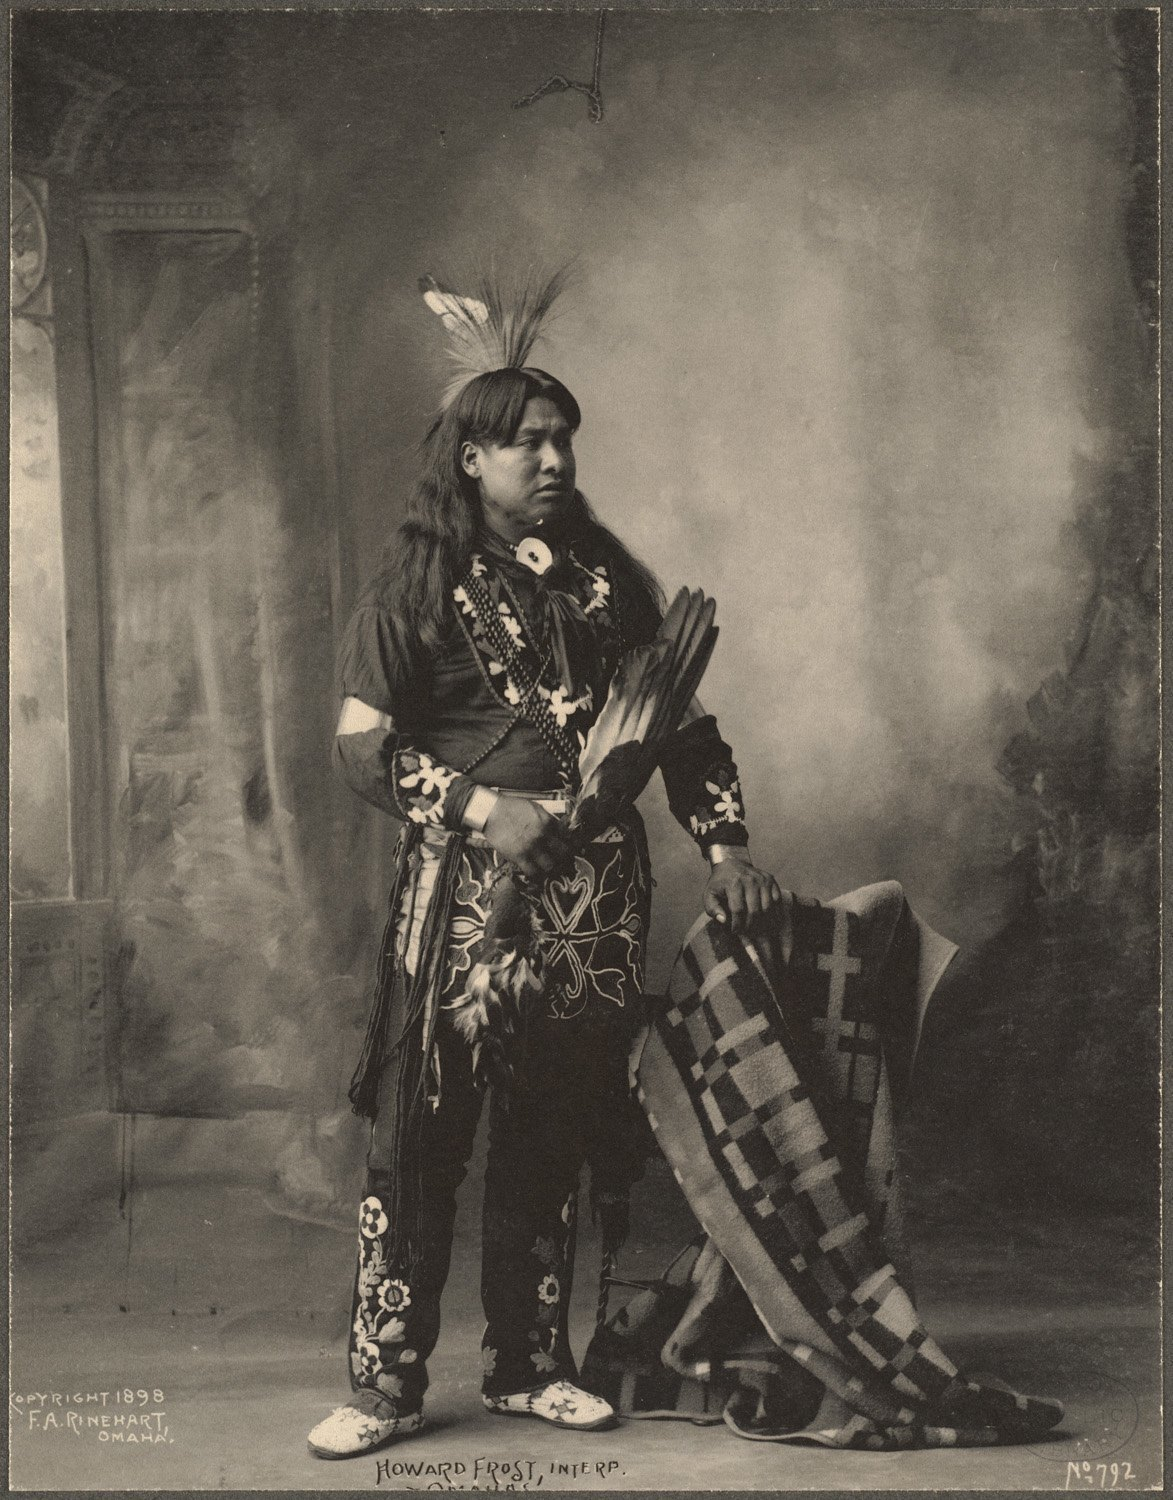 Howard Frost, Interp., Omahas, 1899. (Photo by Frank A. Rinehart)